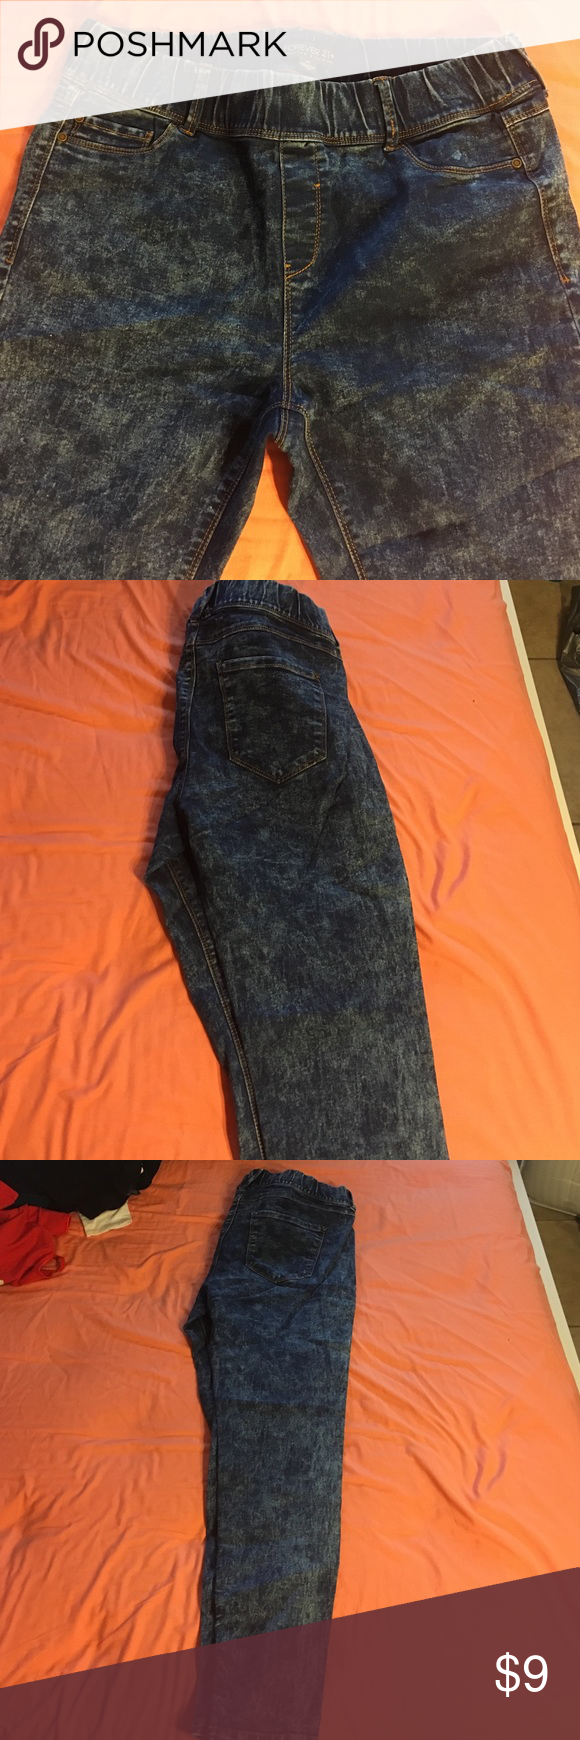 stretchy plus sized F21 acid washed pants. stretchy from top to bottom. stretchy waistline band. no buttons or zipper. no pockets. Forever 21 Pants Skinny